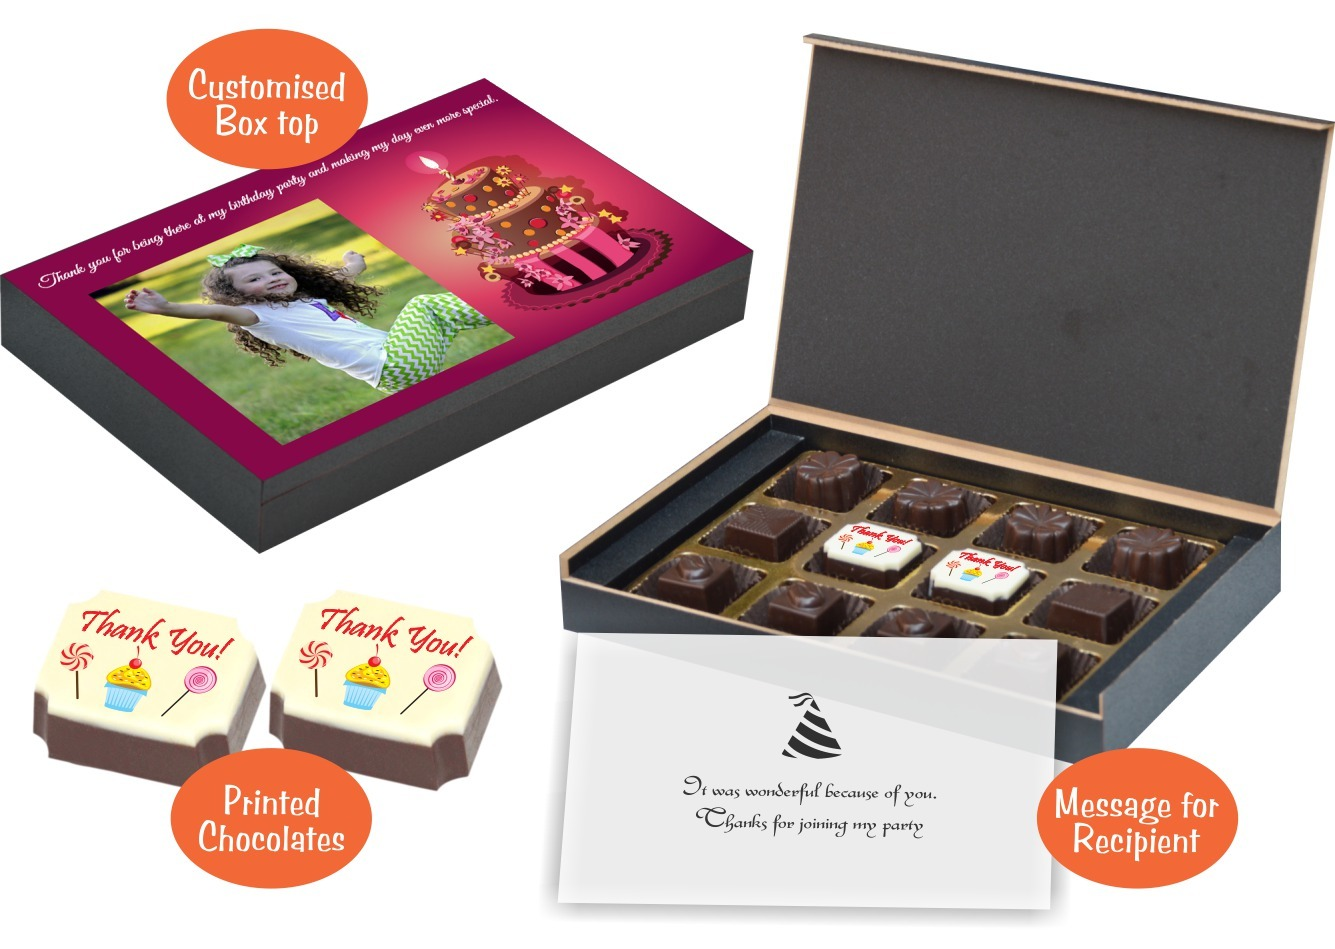 Return gift ideas for kids, chocolate gifts